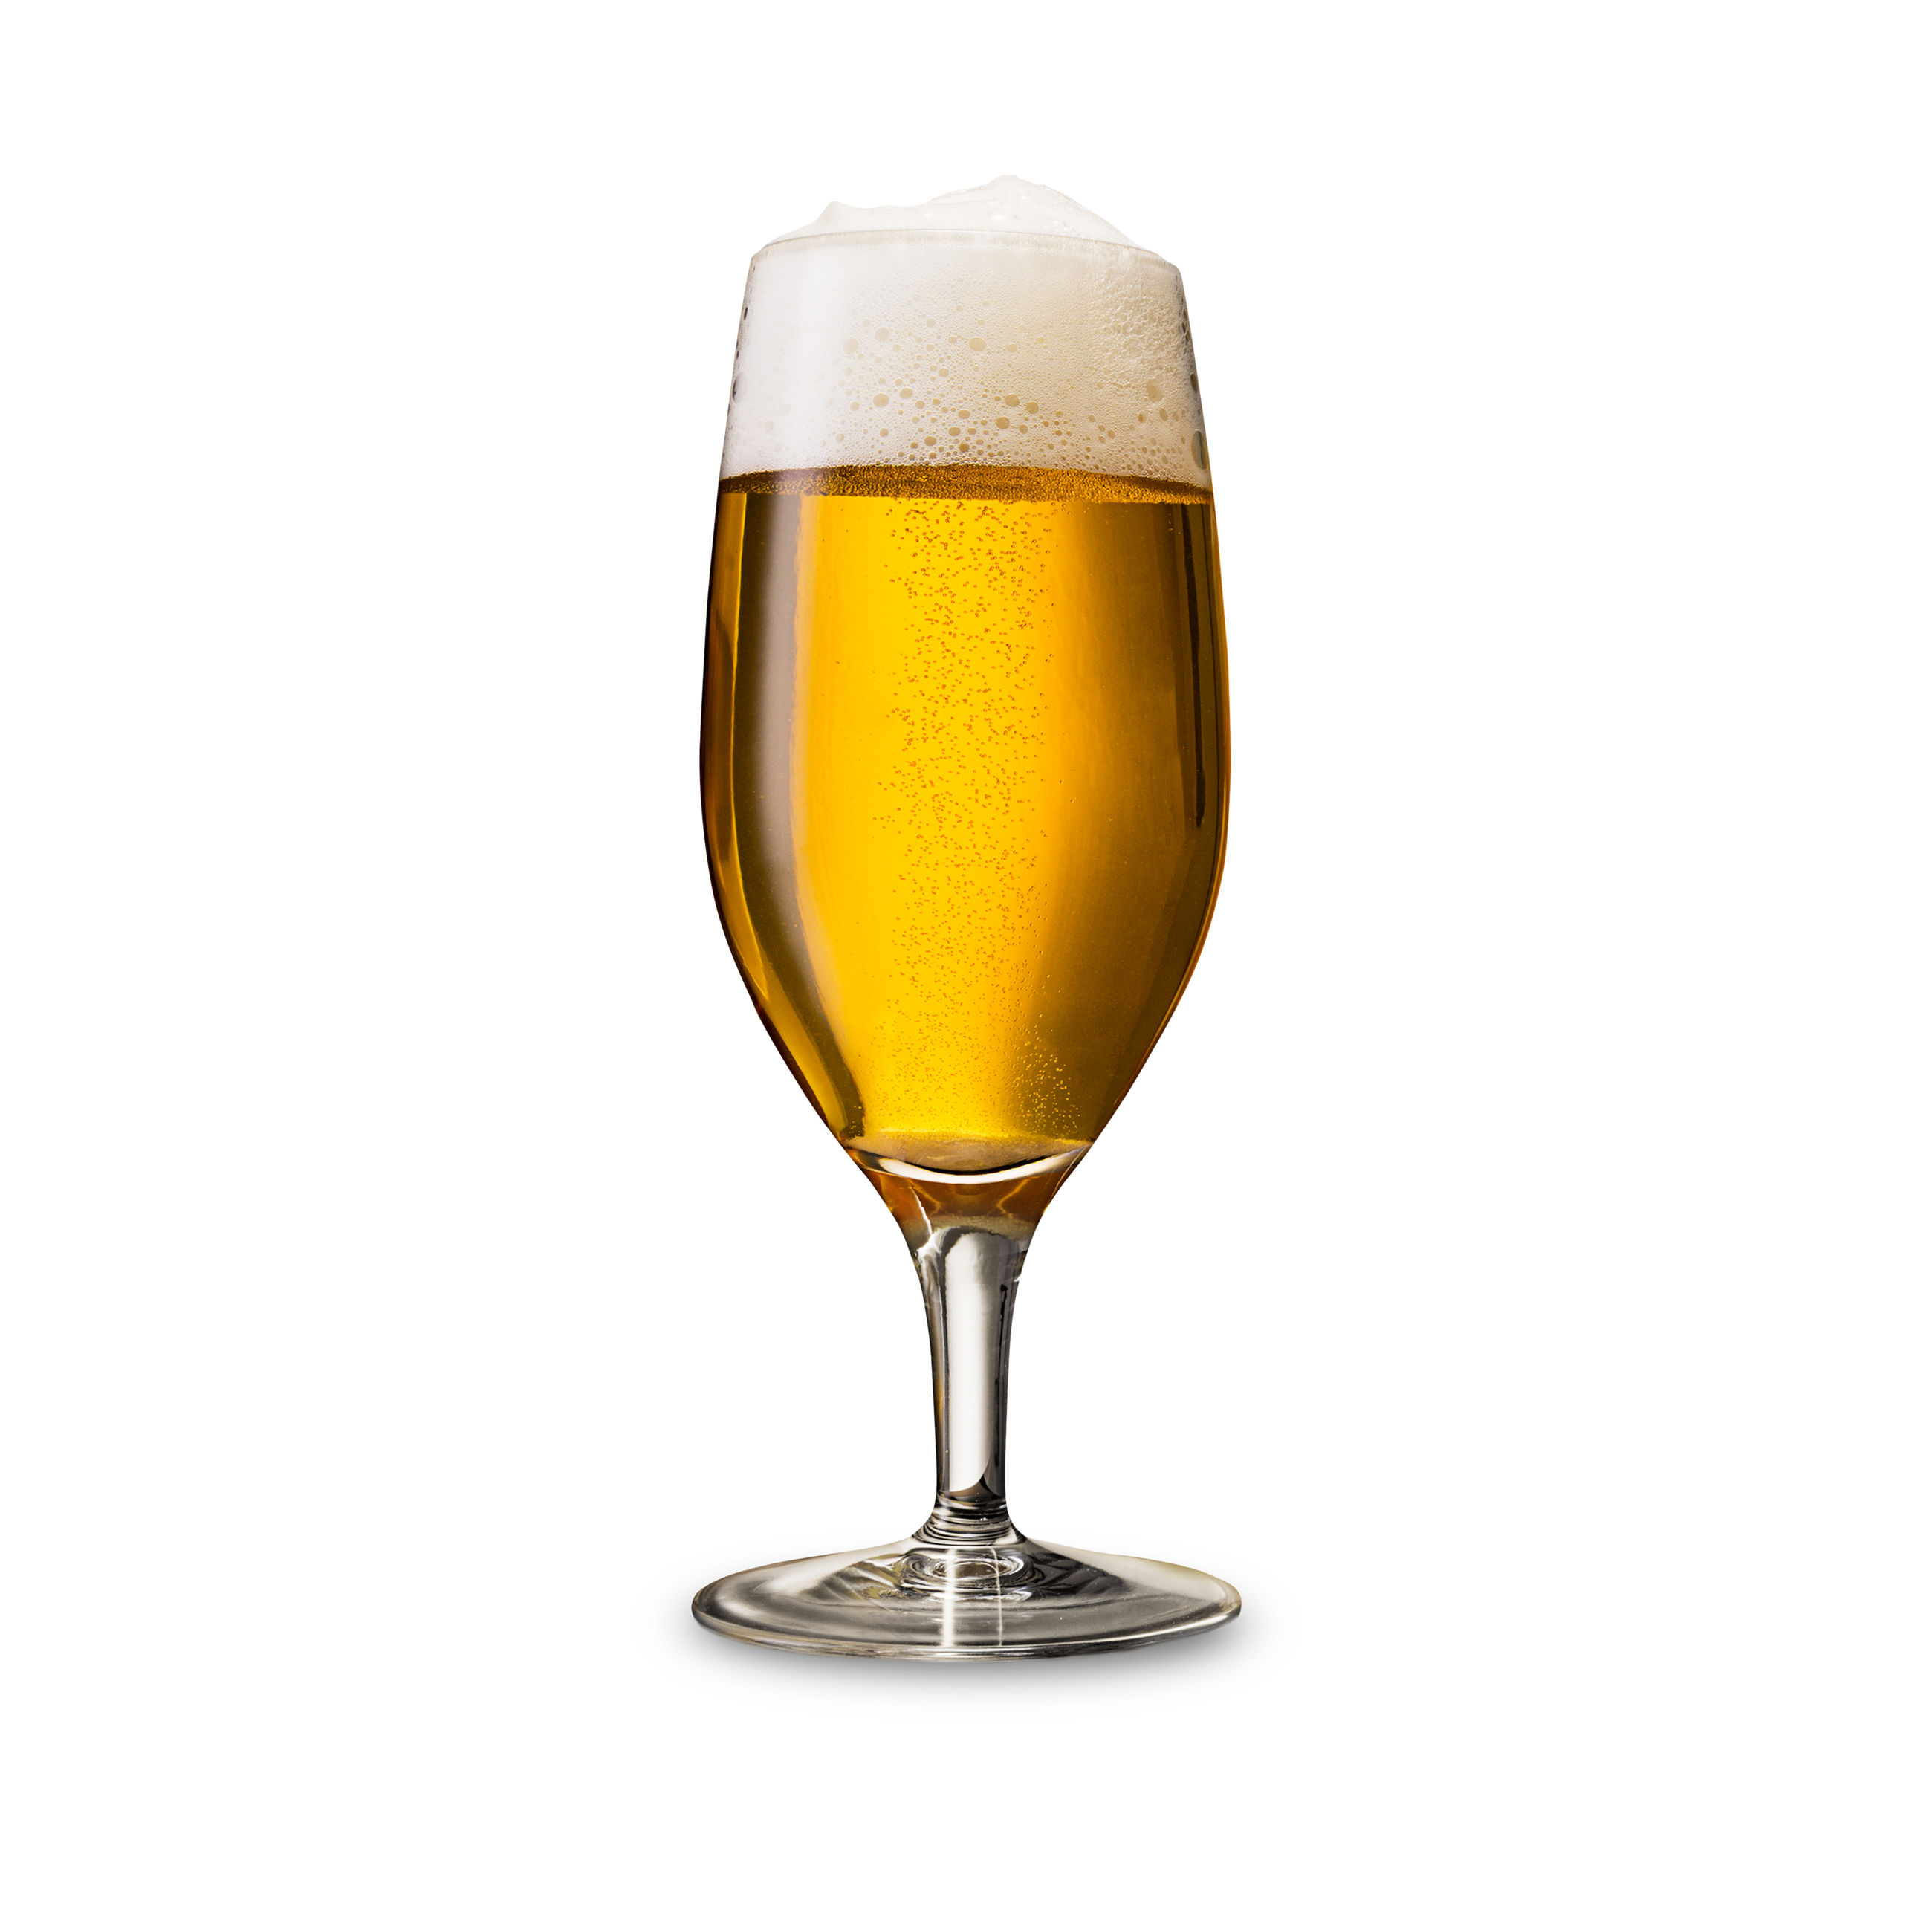 Close-up of beer in glass against white background